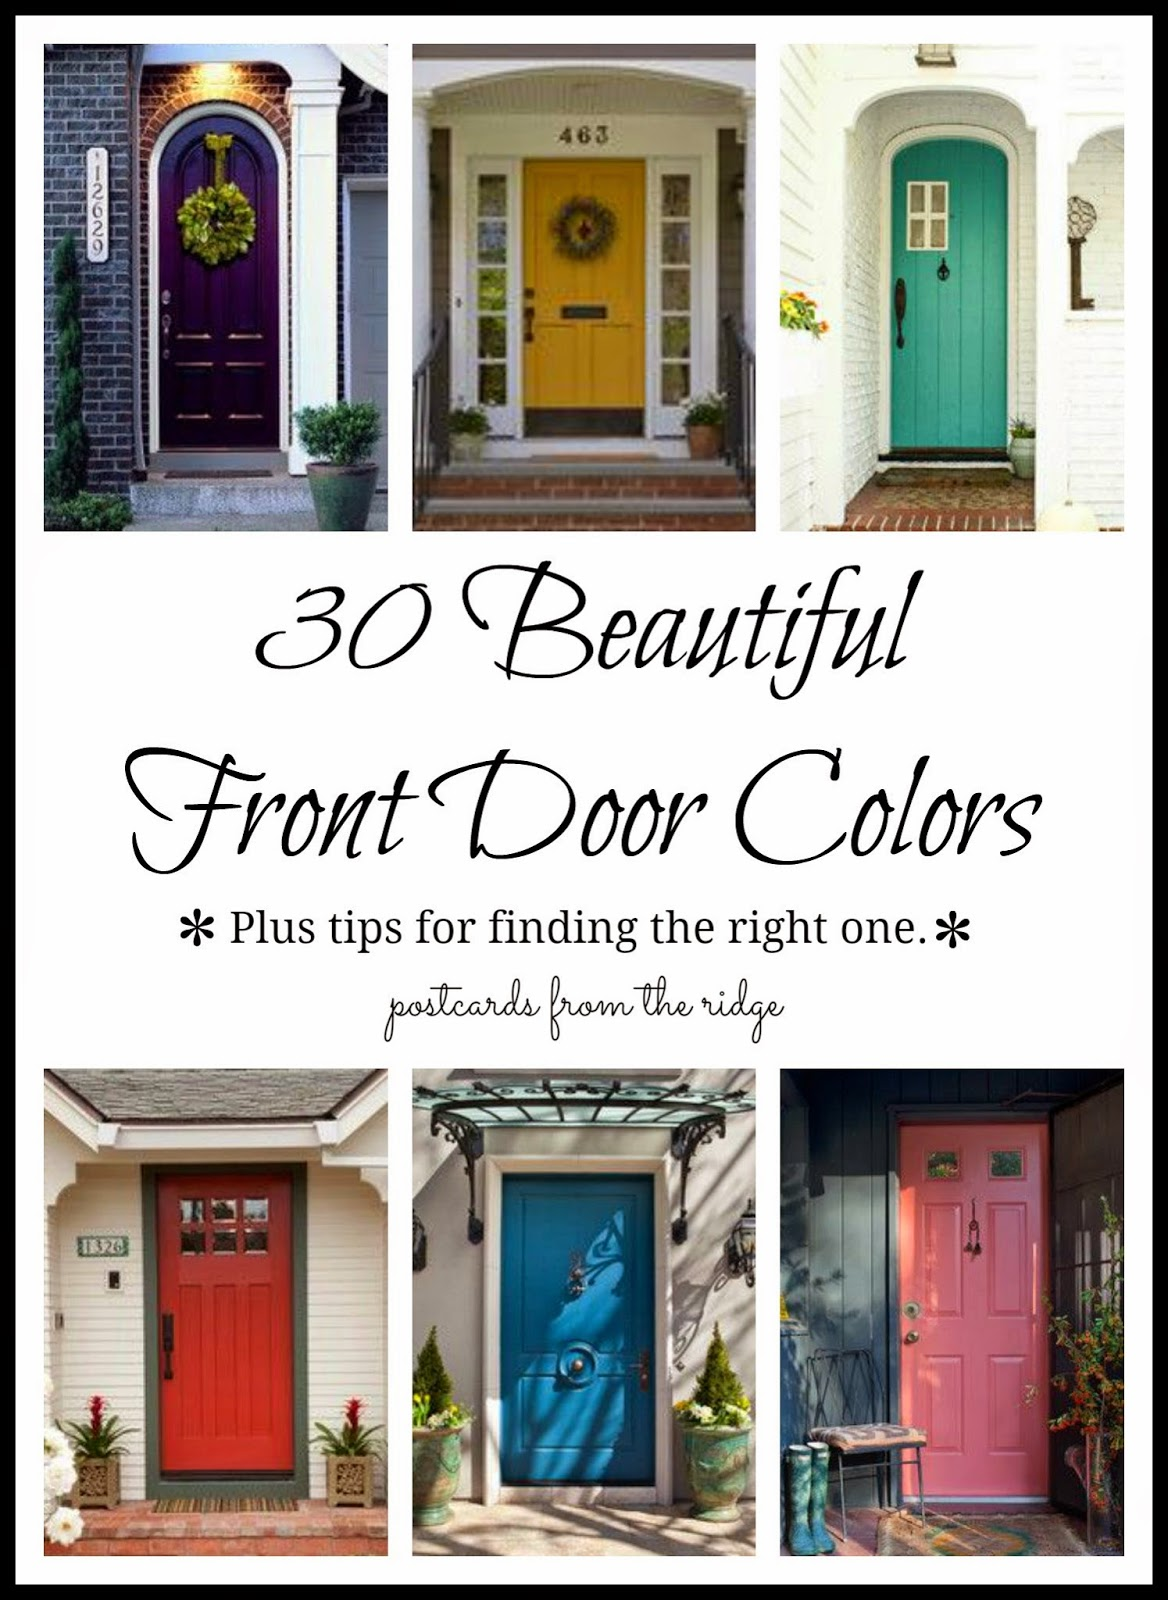 30 front door colors with tips for choosing the right one postcards from the ridge - Front door color ideas inspirations can use ...